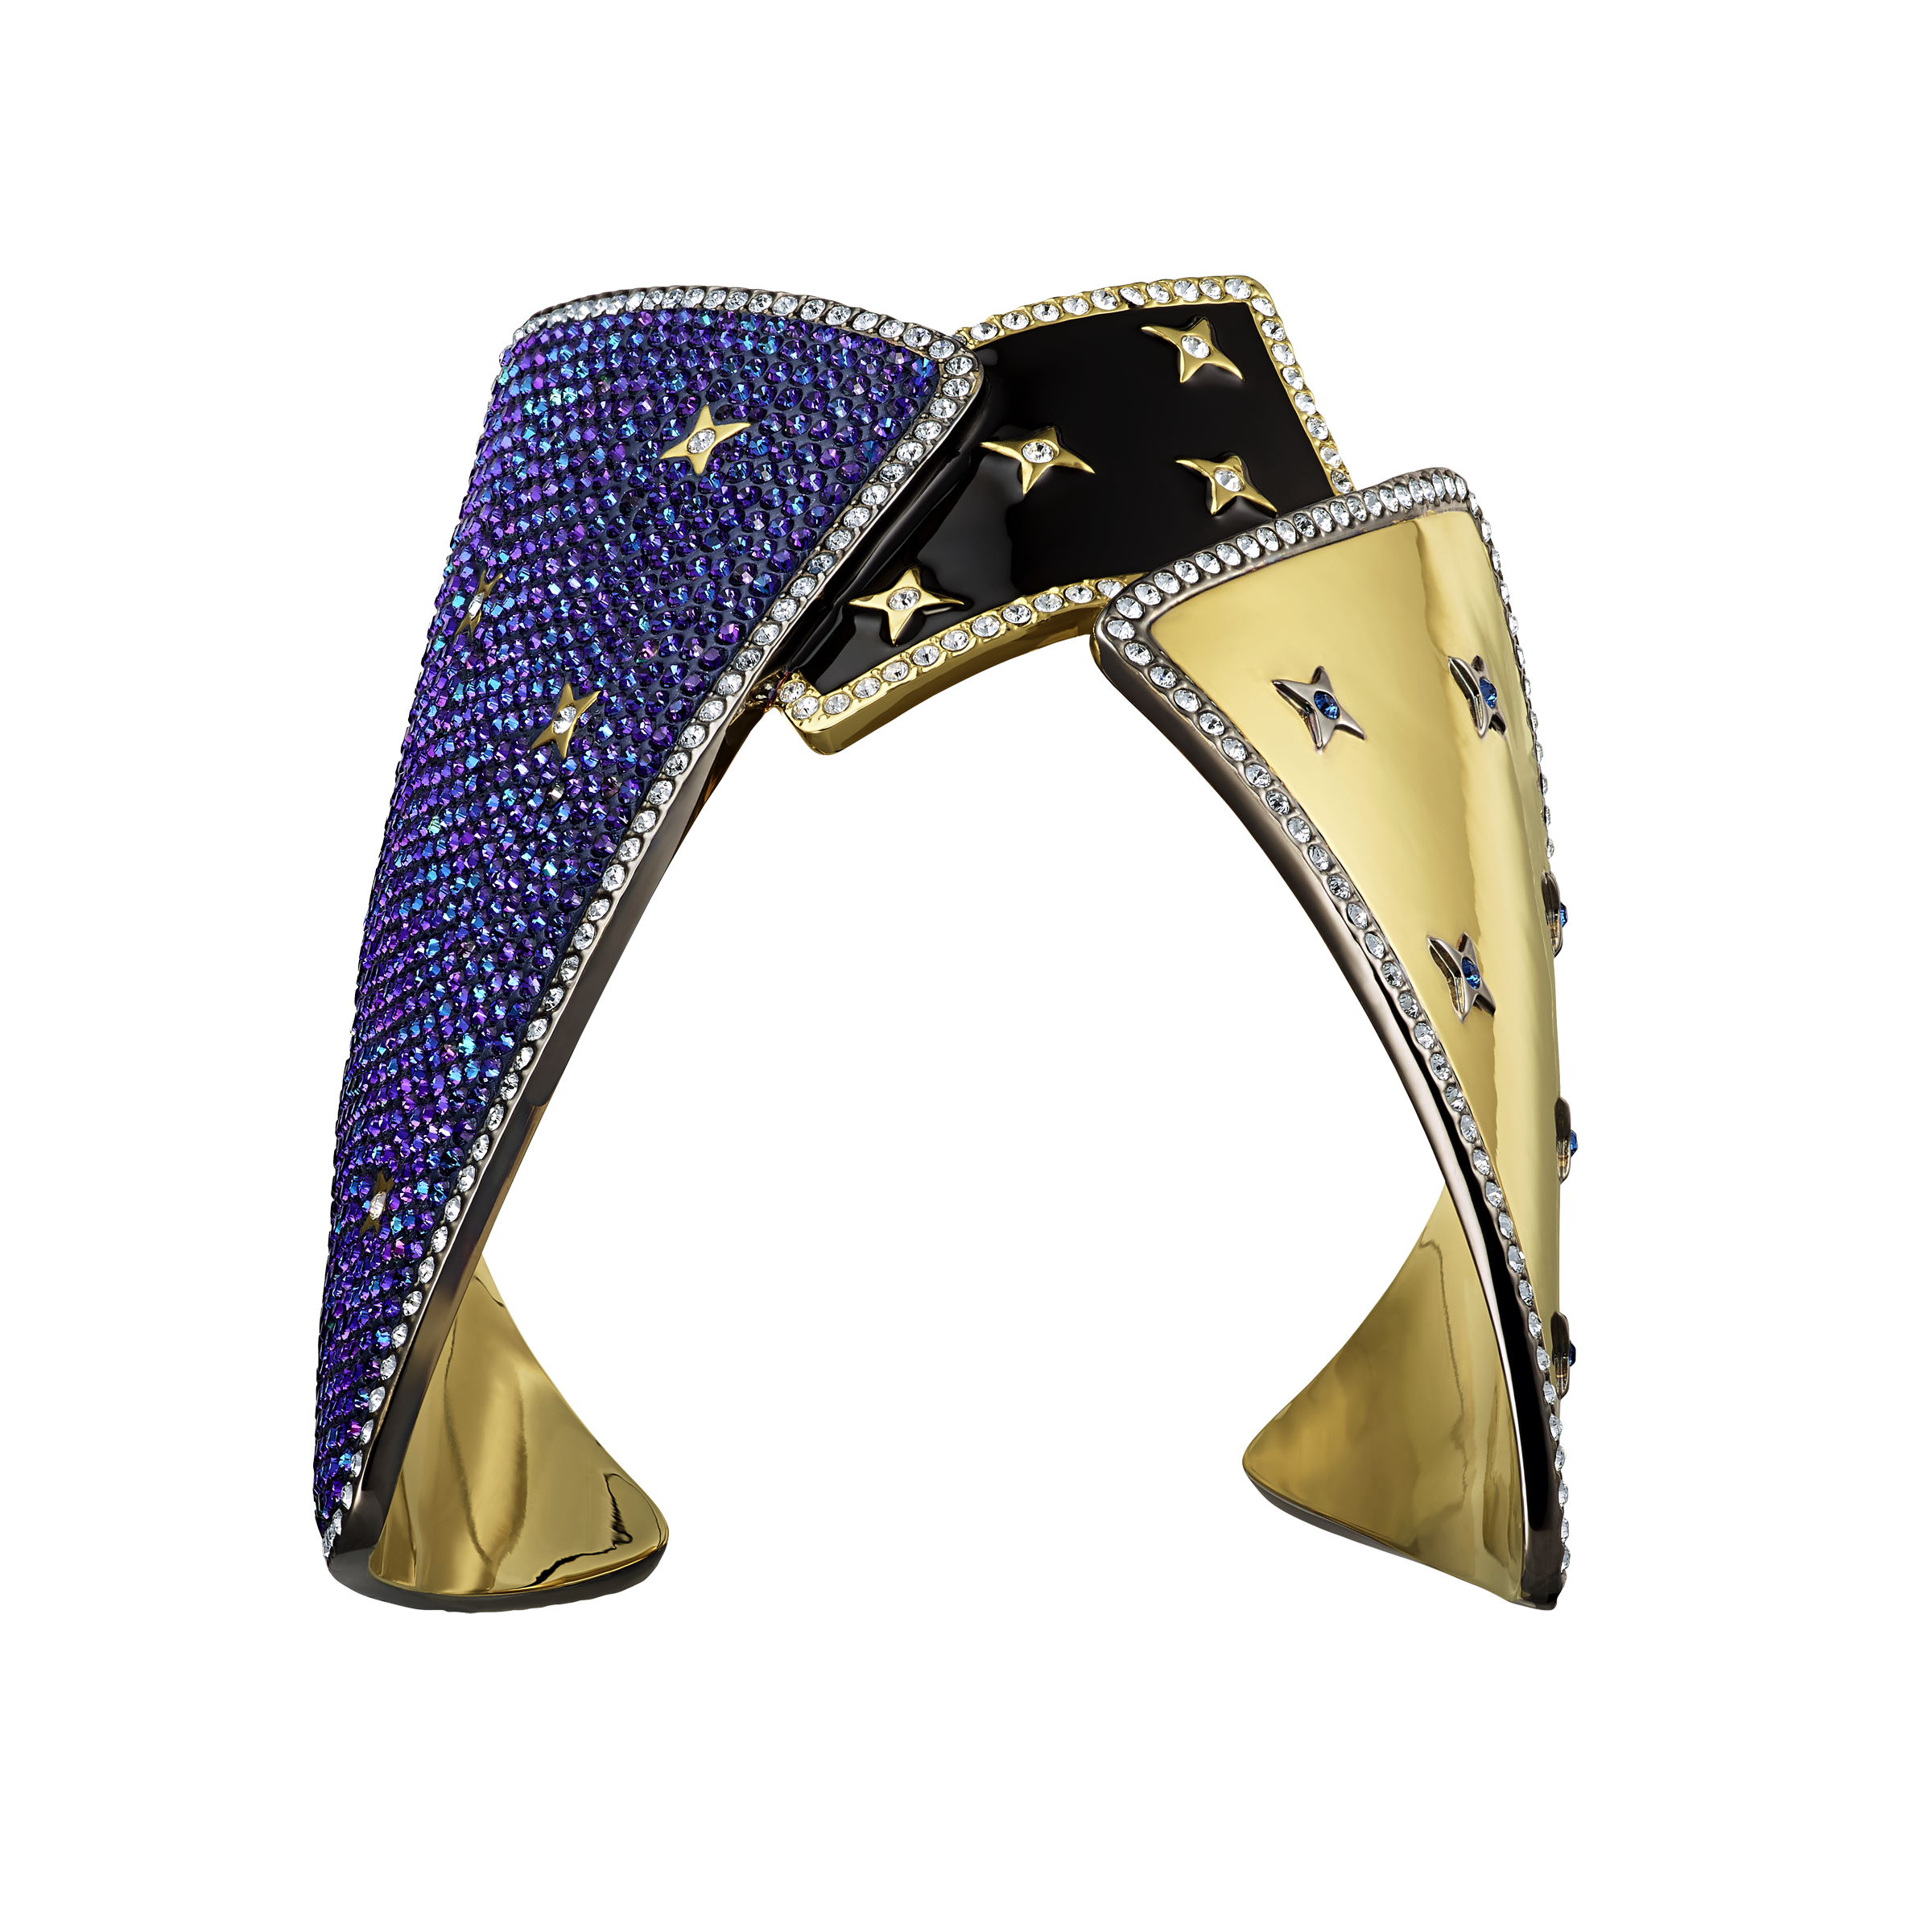 Chromancy Cuff, Multi-colored, Mixed metal finish